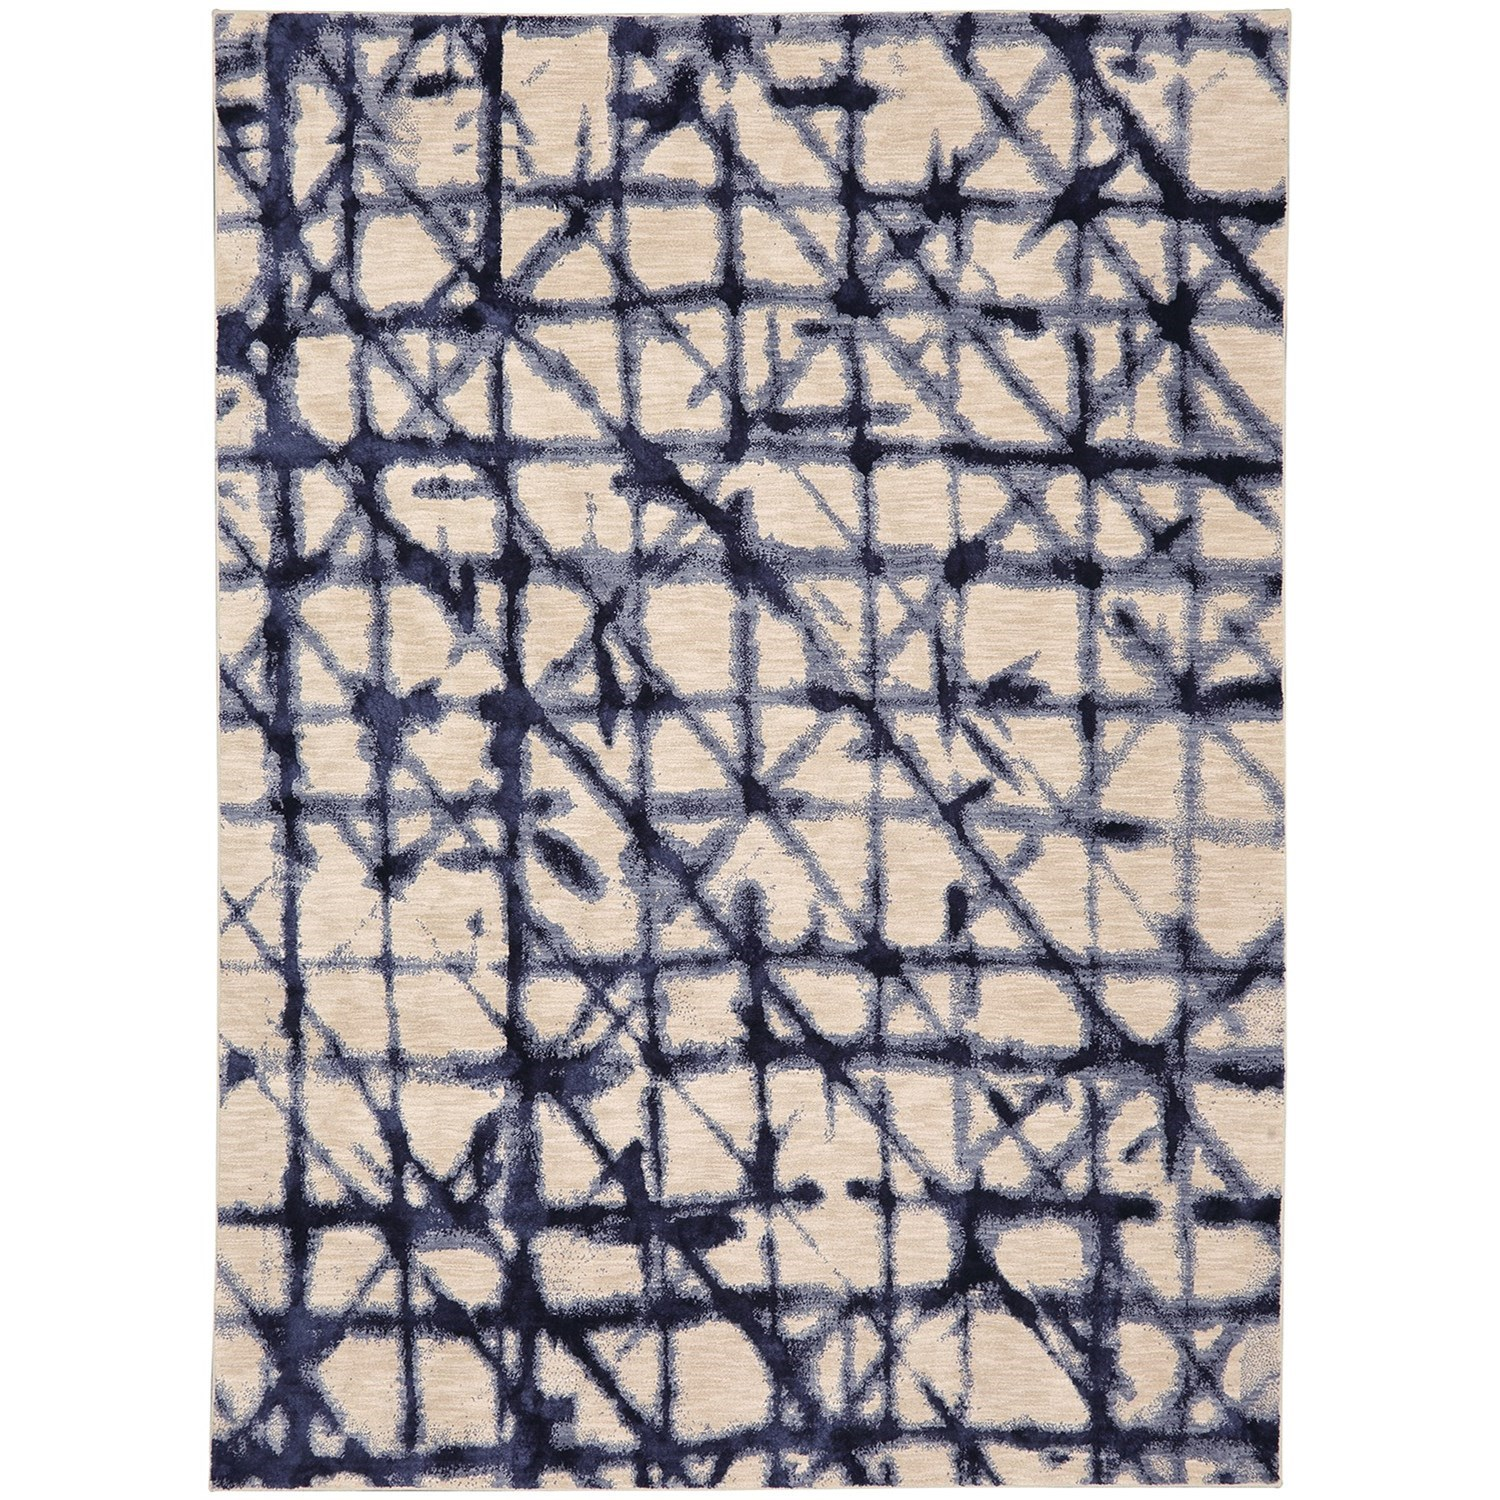 Enigma 8'x11' Rectangle Geometric Area Rug by Karastan Rugs at Darvin Furniture